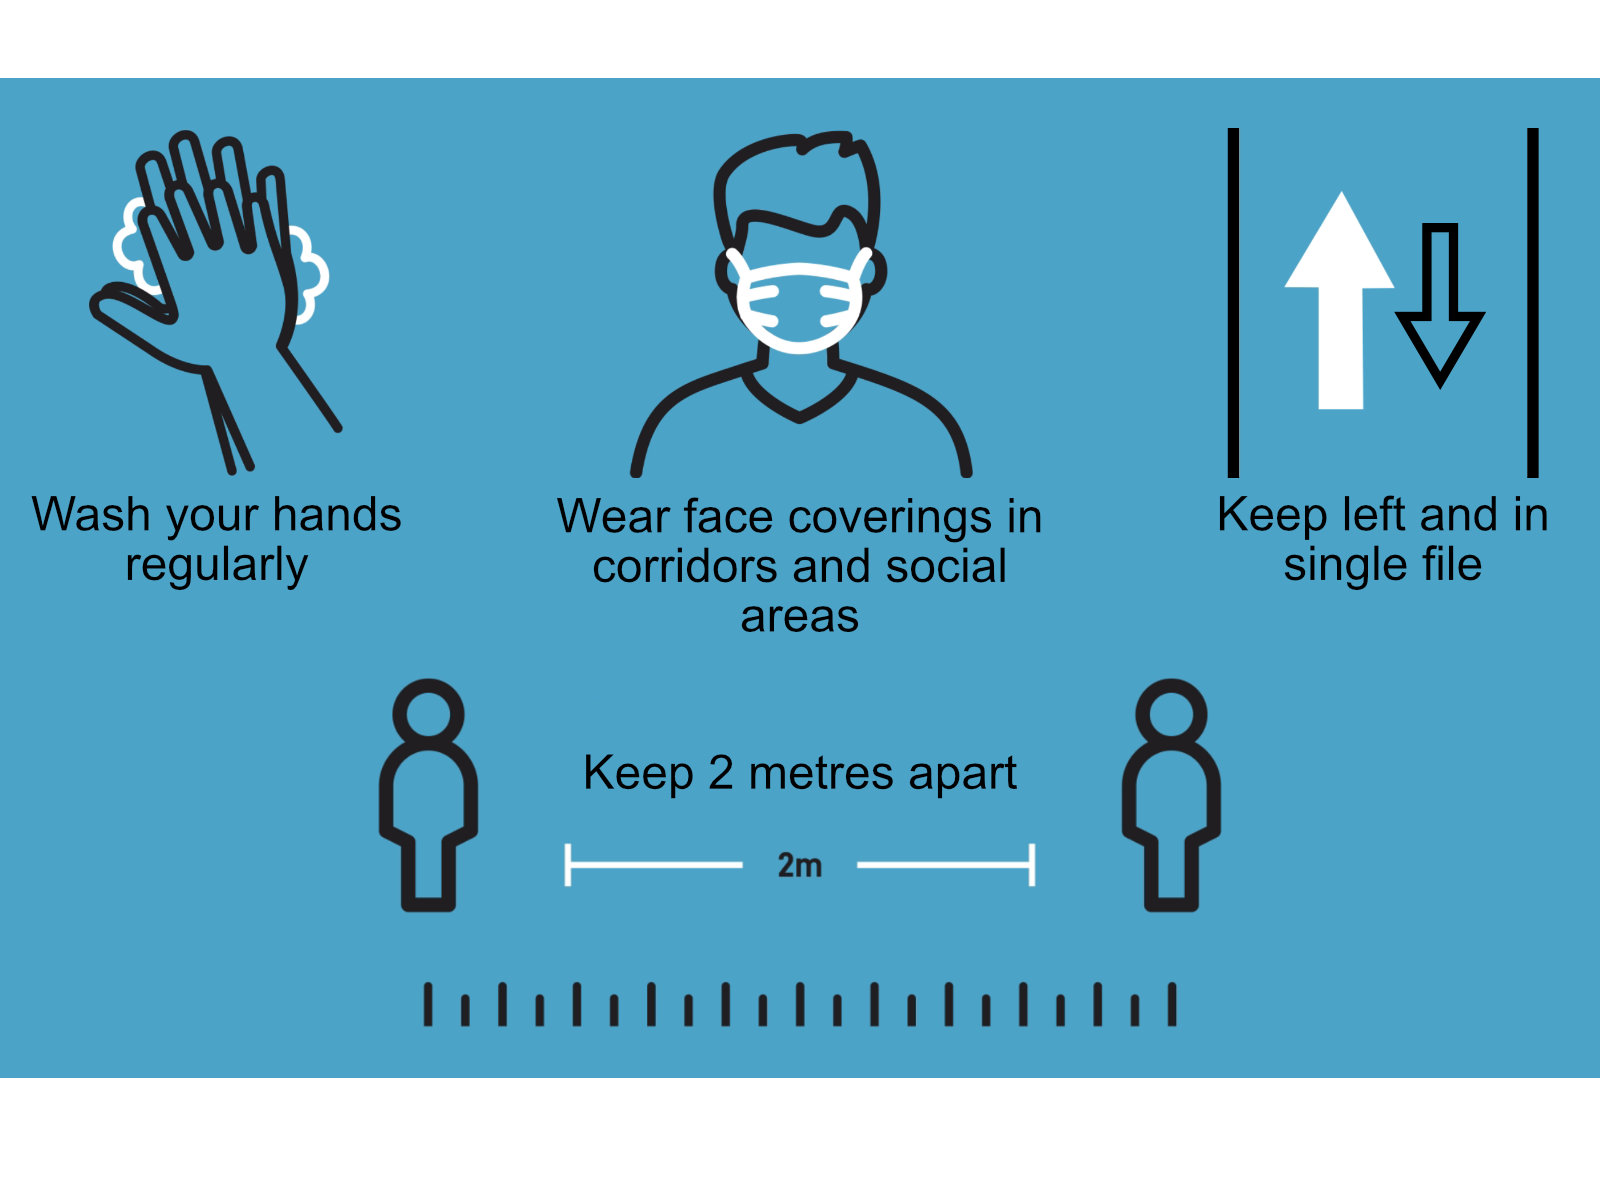 College Covid 19 Guidance - Wash your hands regularly, wear face coverings in corridors and social areas, keep left and in single file and keep 2 metres apart.